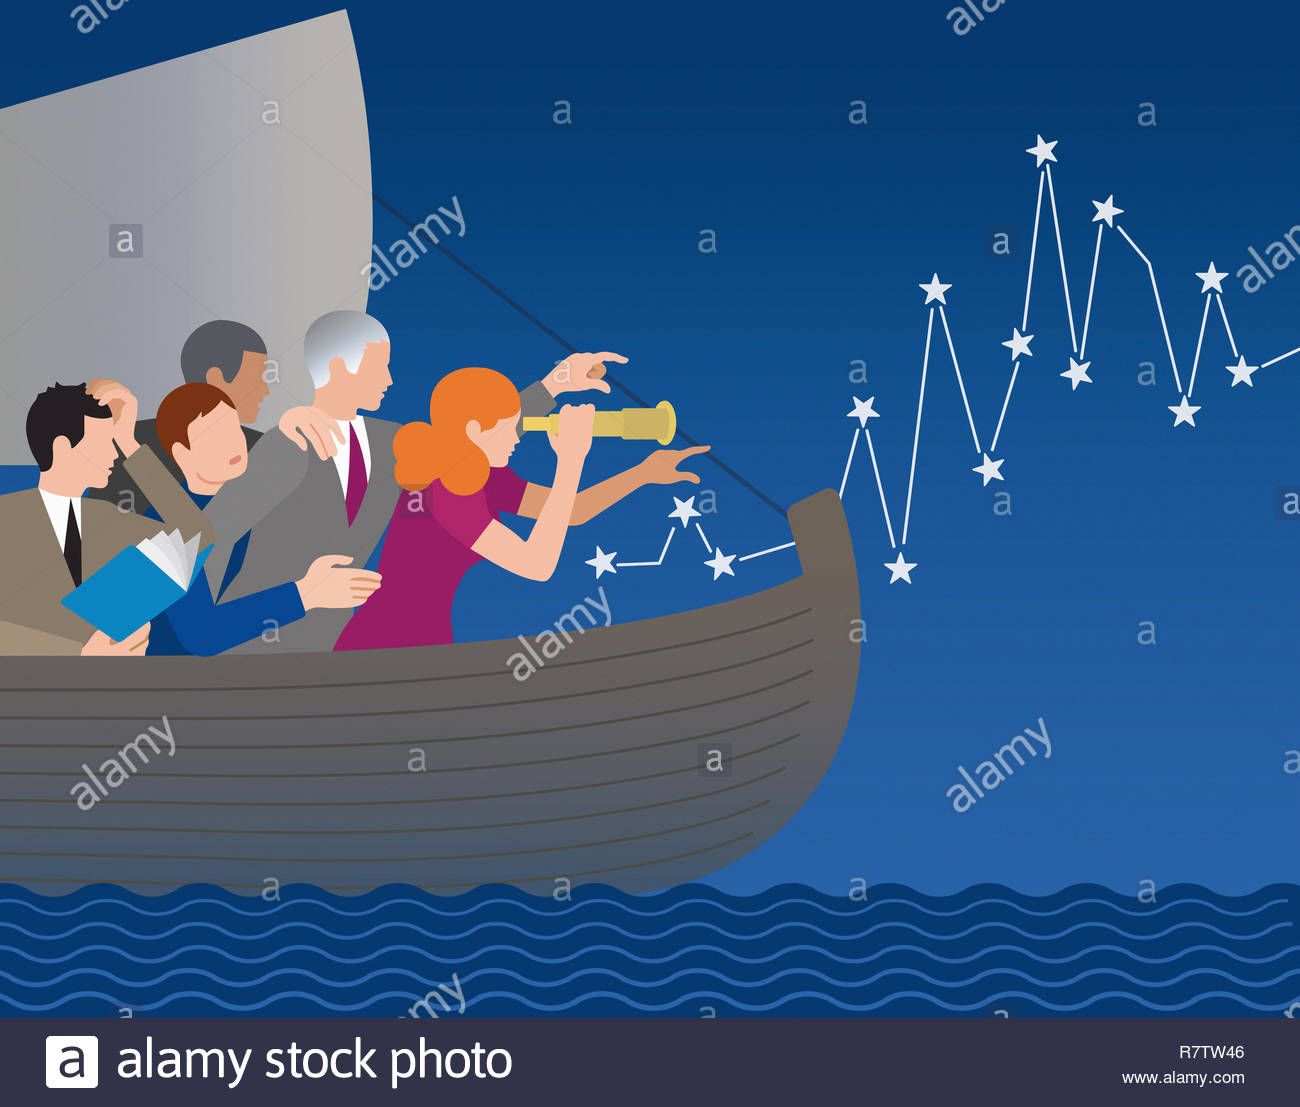 Business people lost at sea finding the way forward Stock Photo